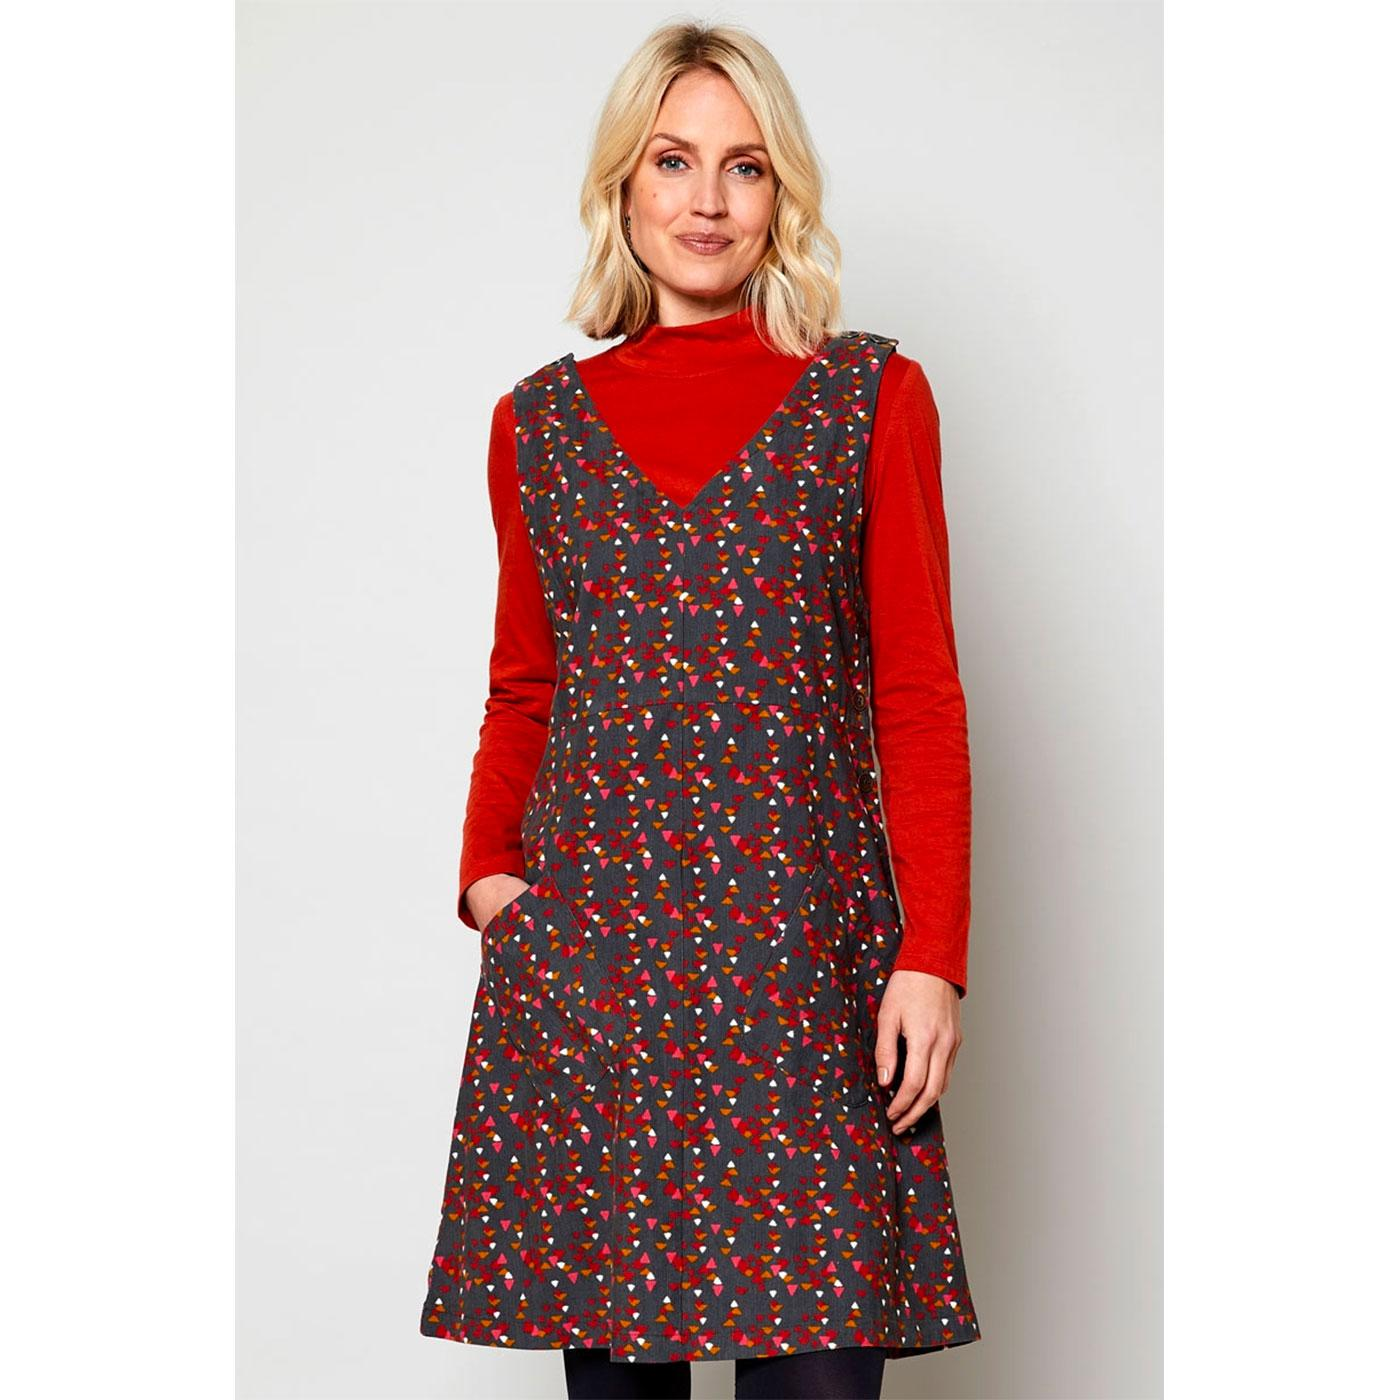 NOMADS Retro 70s Needlecord Pinafore Dress in Rock